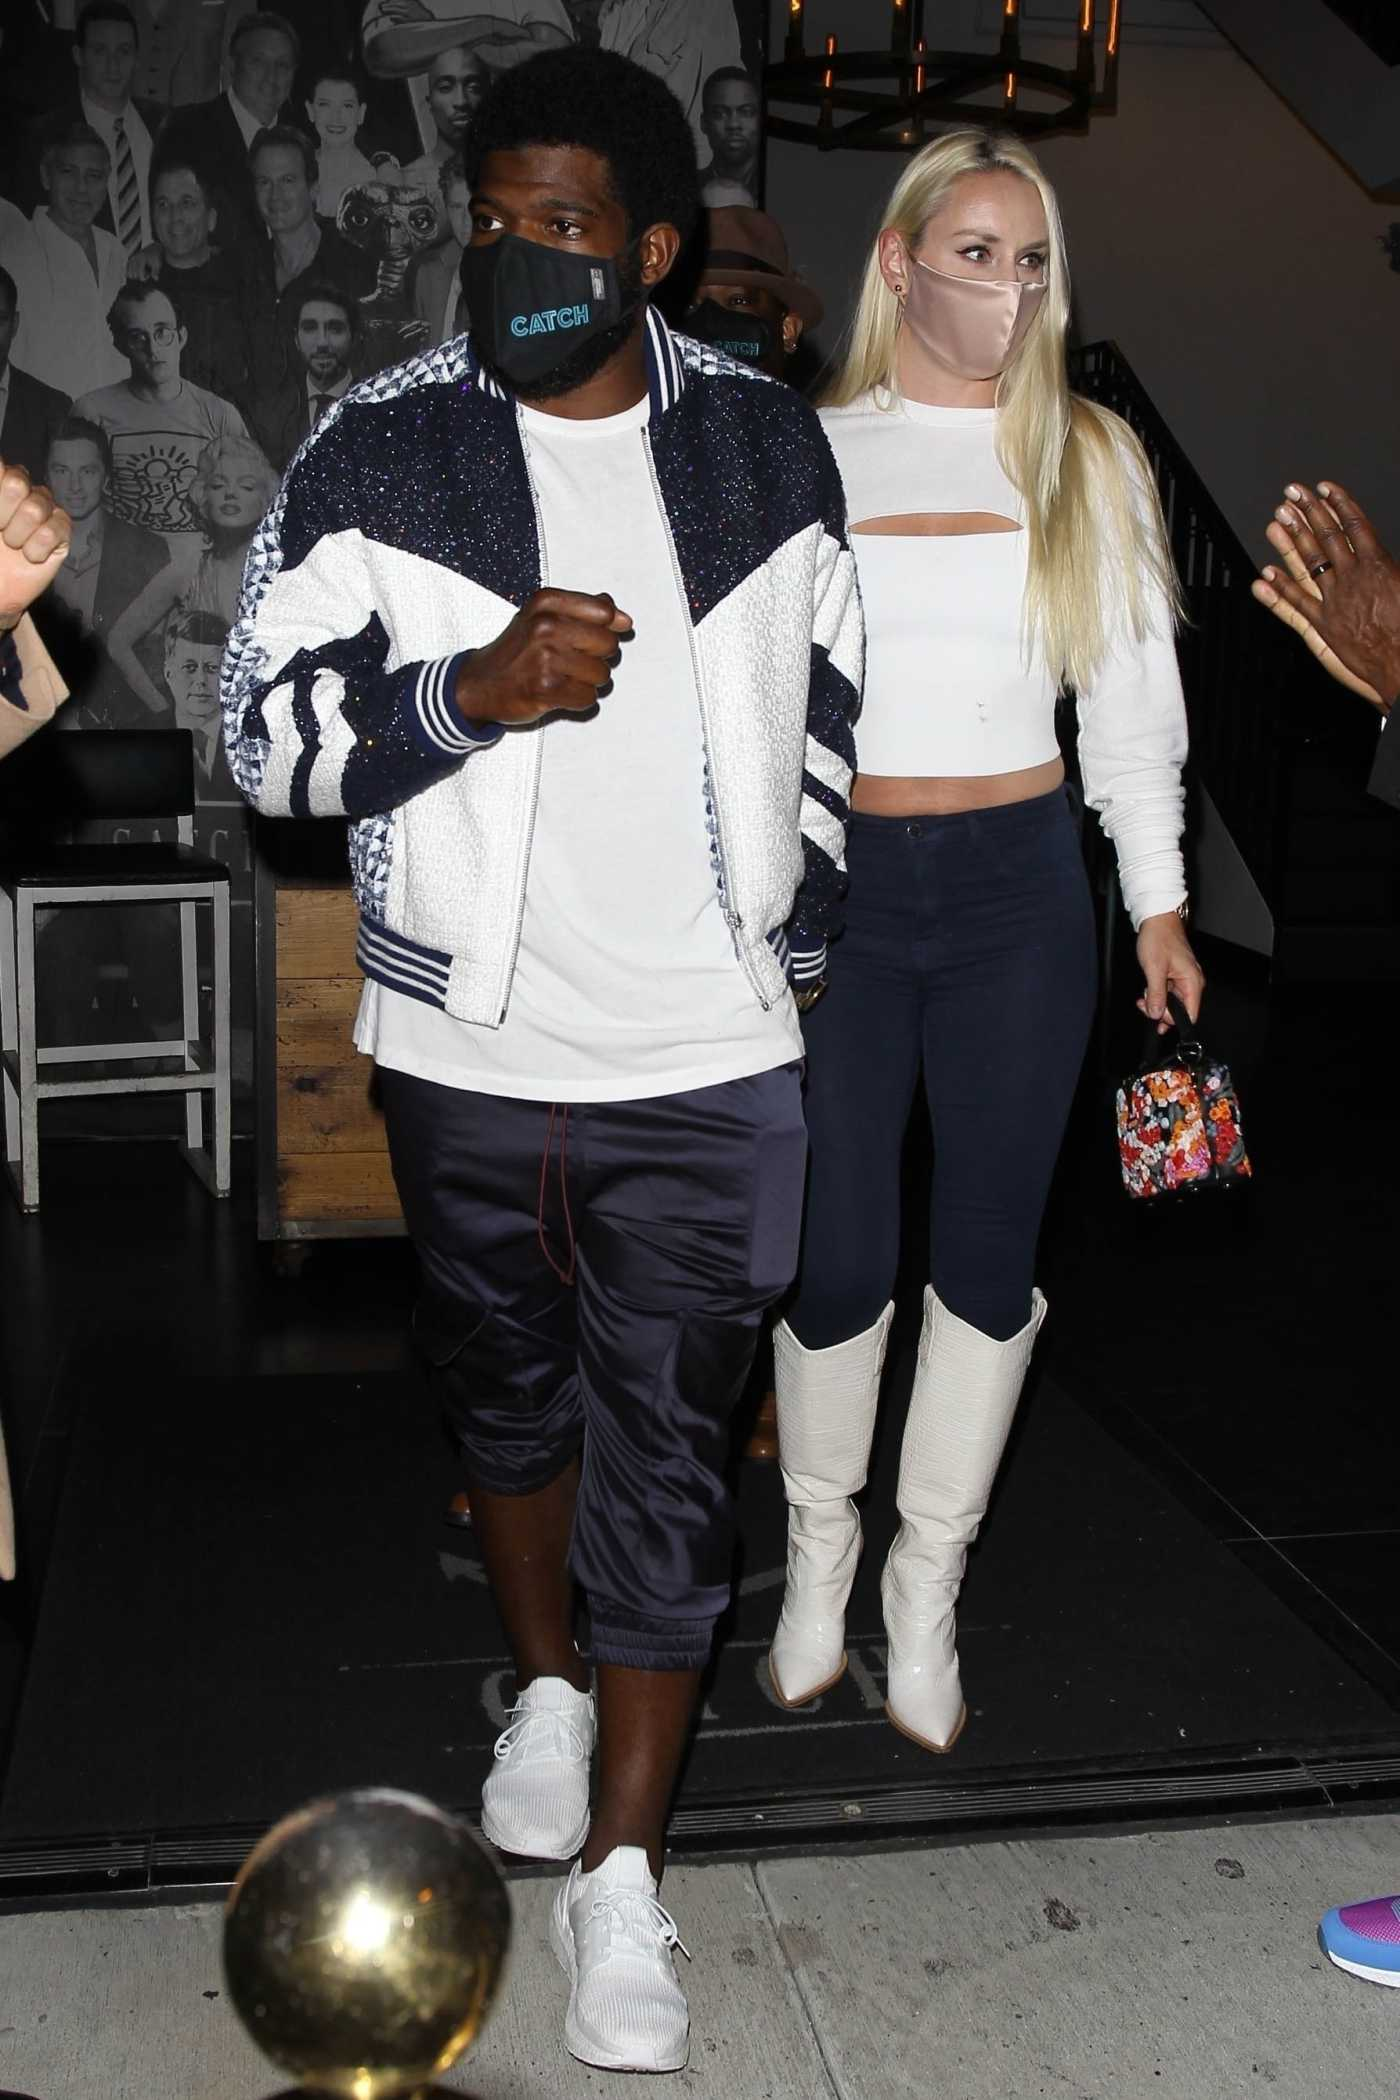 Lindsey Vonn in a White Top Out with P.K. Subban Leaves Catch Restaurant in West Hollywood 07/03/2020